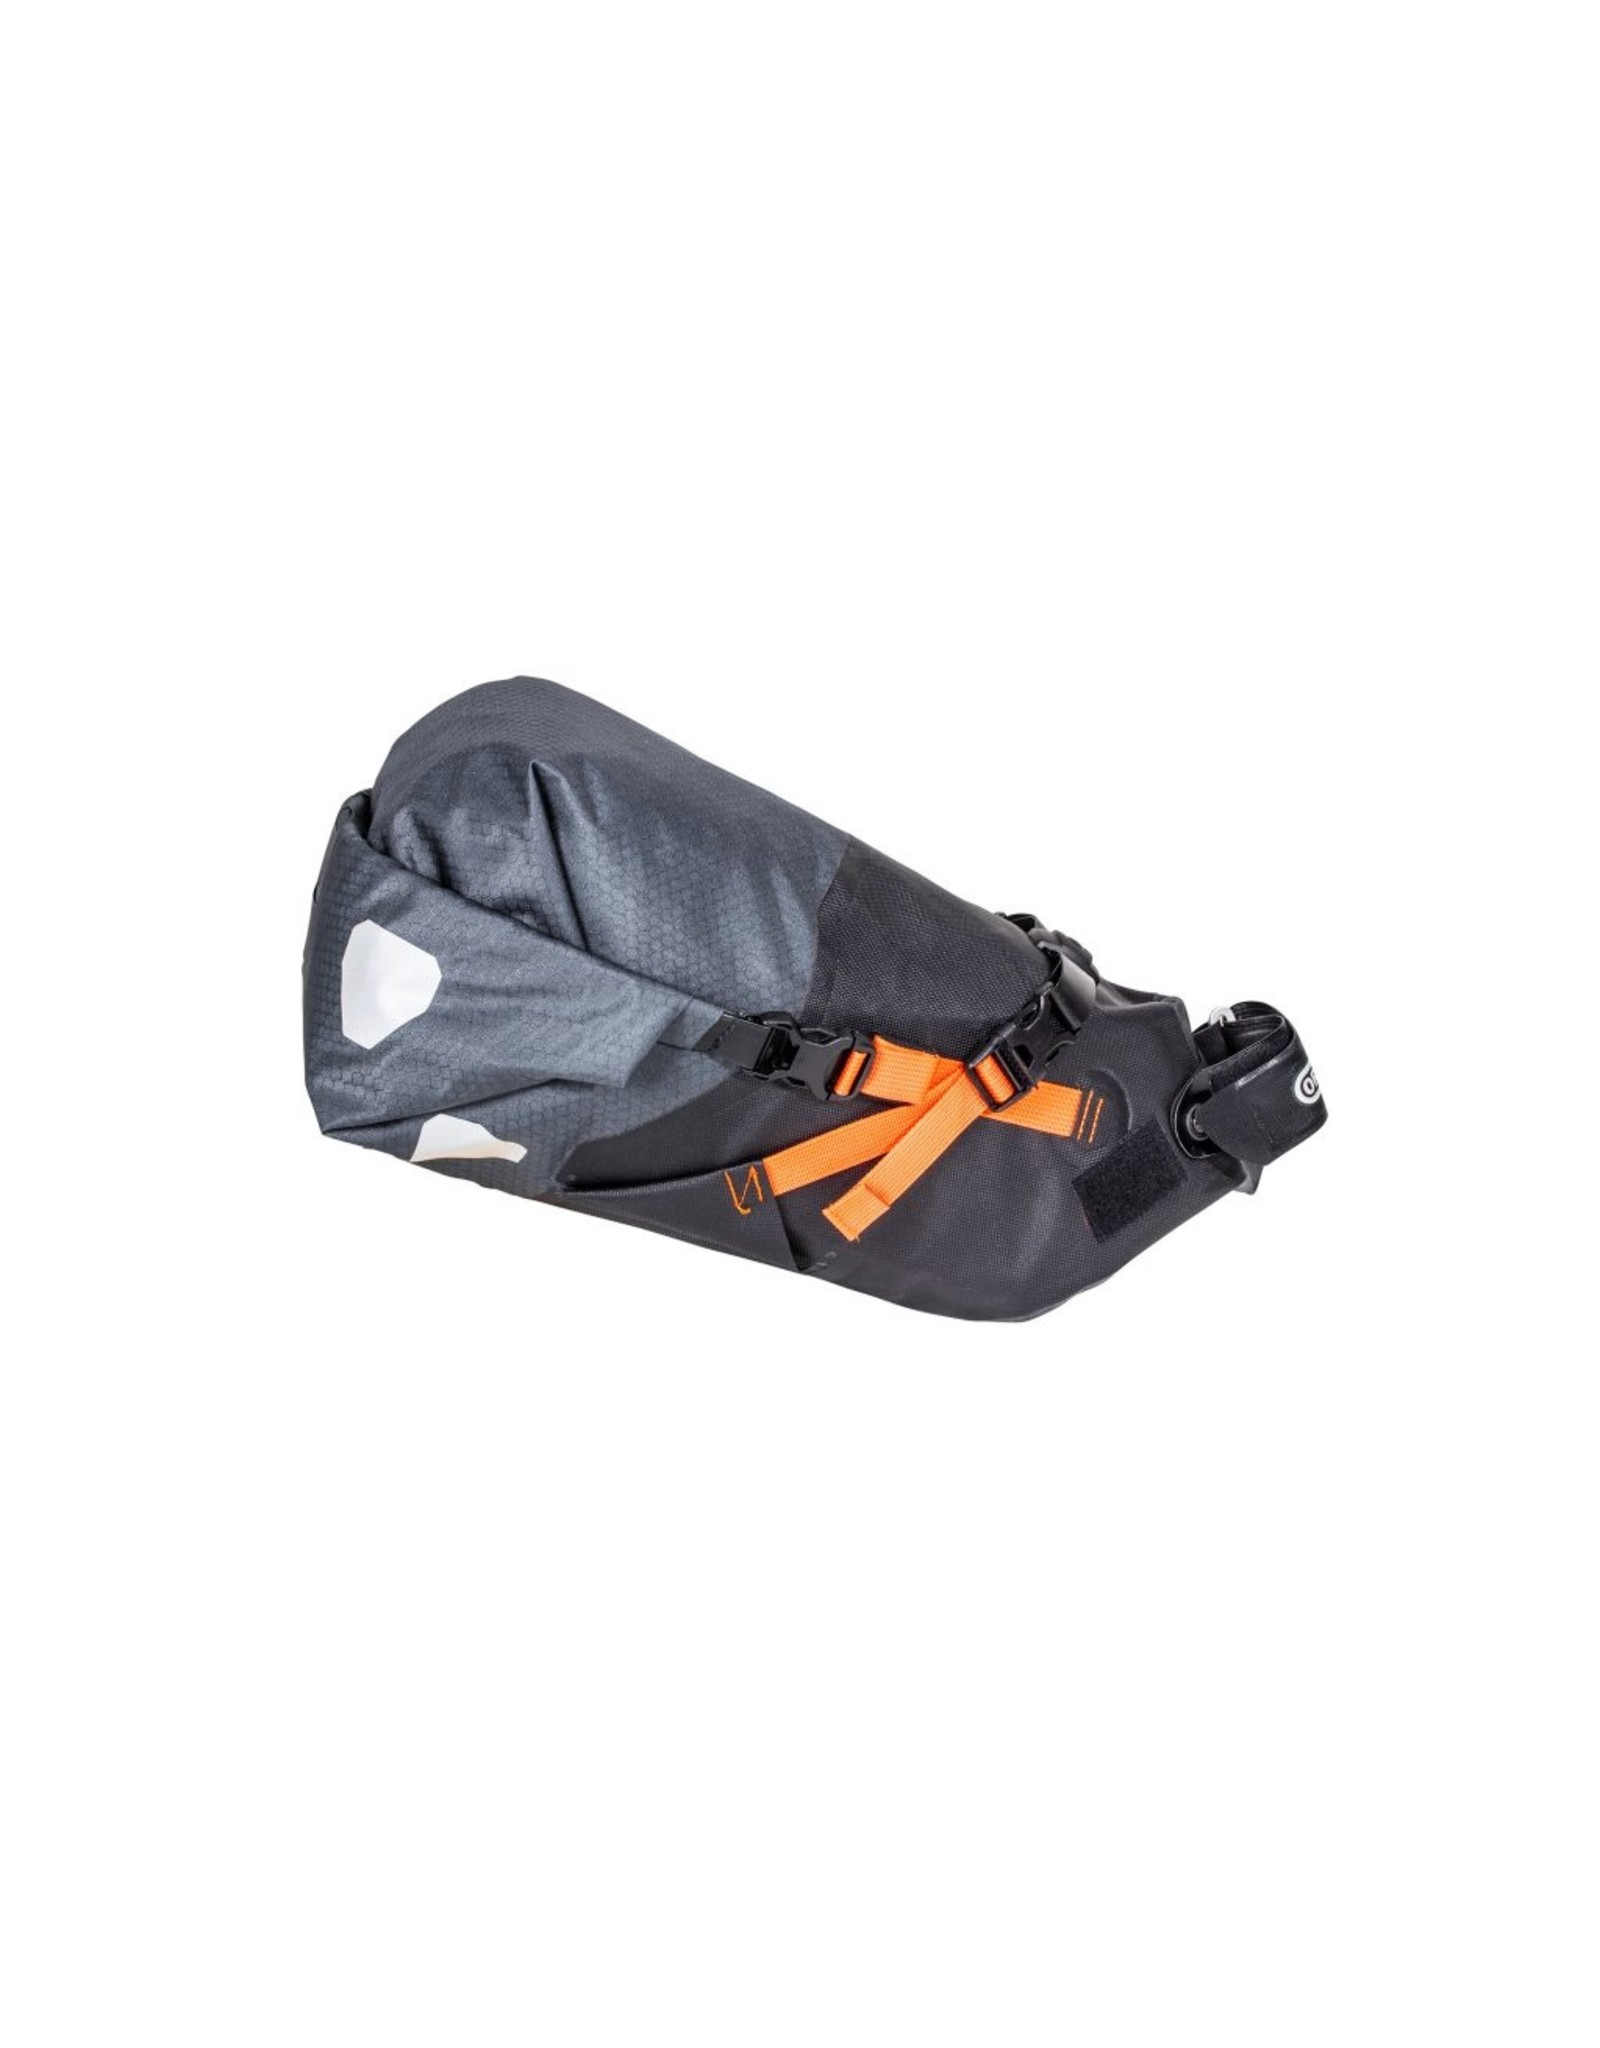 Ortlieb Seat Pack MD